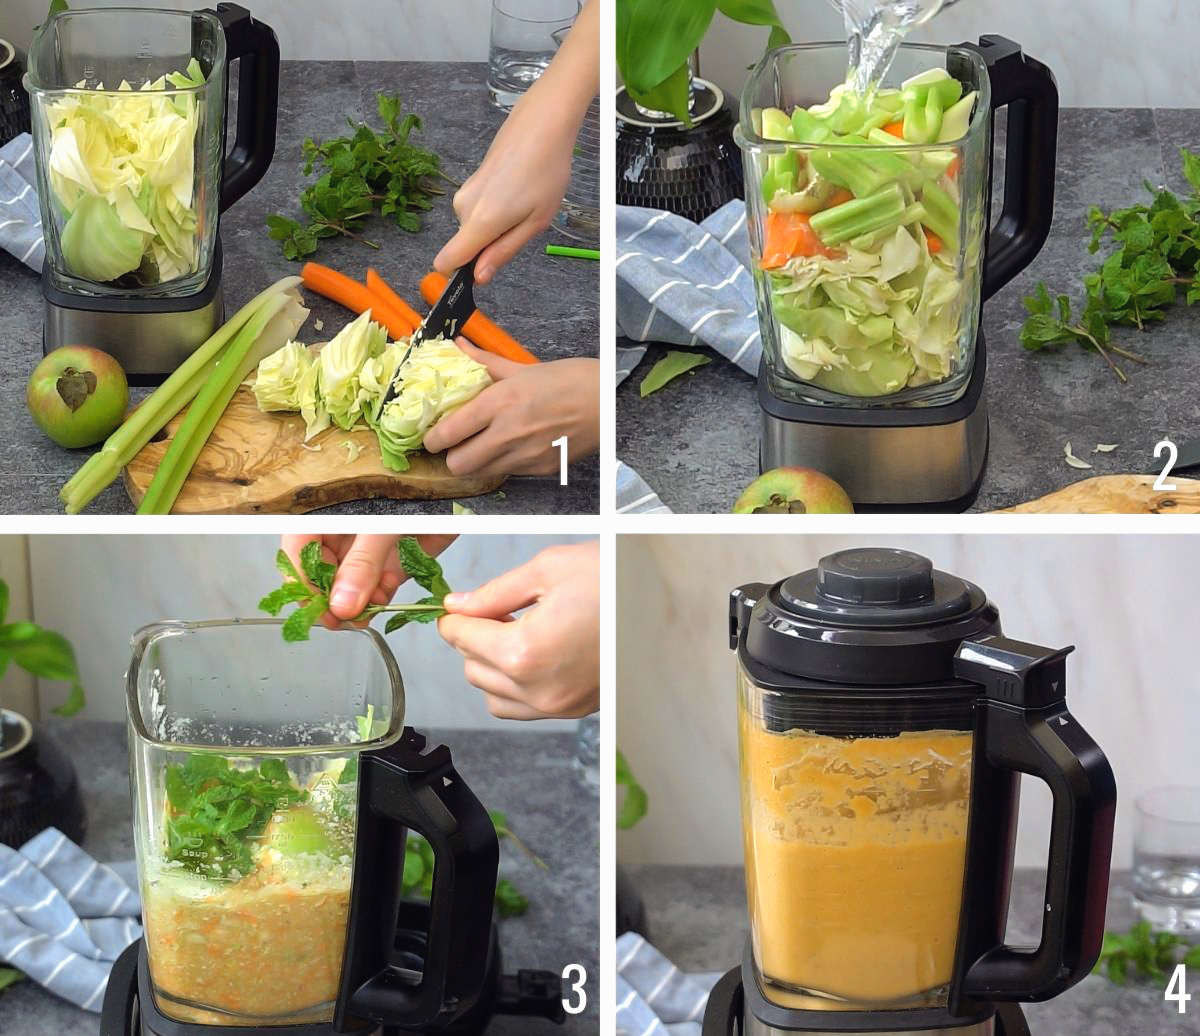 How to make cabbage juice recipe with blender, step by step process shots.